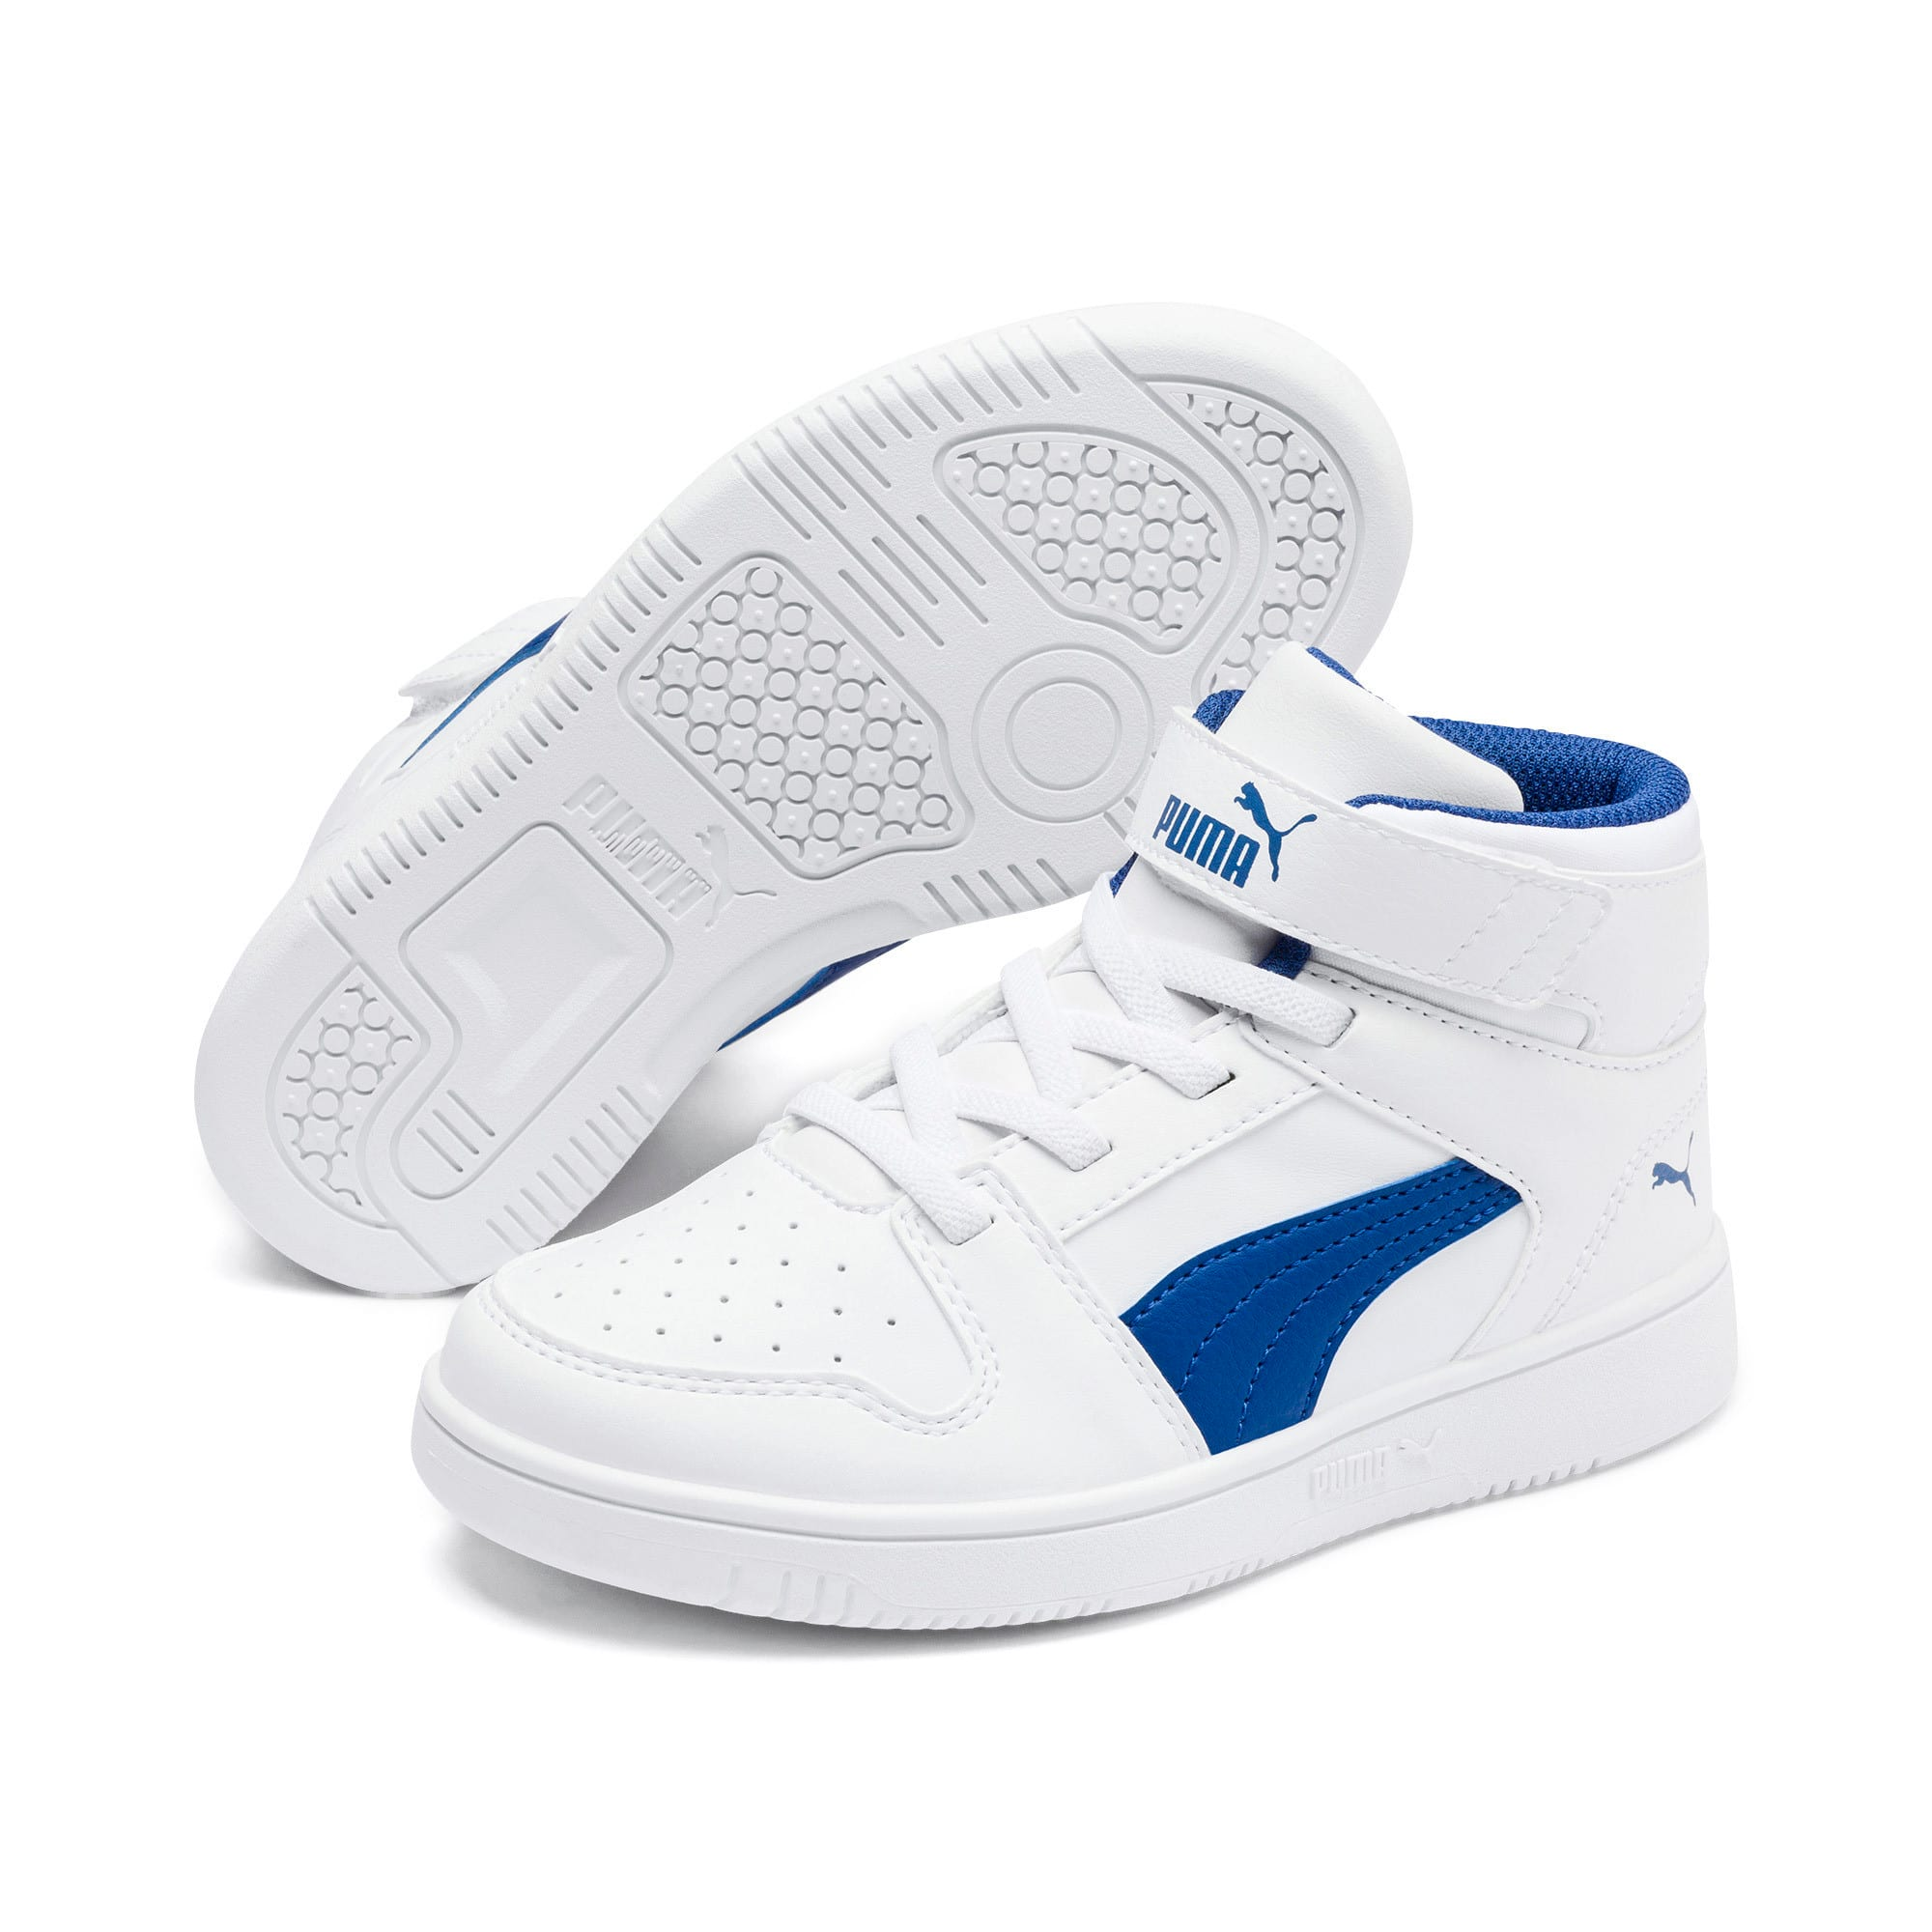 Thumbnail 2 of Rebound Lay-Up SL V Kids' Trainers, Puma White-Galaxy Blue, medium-IND